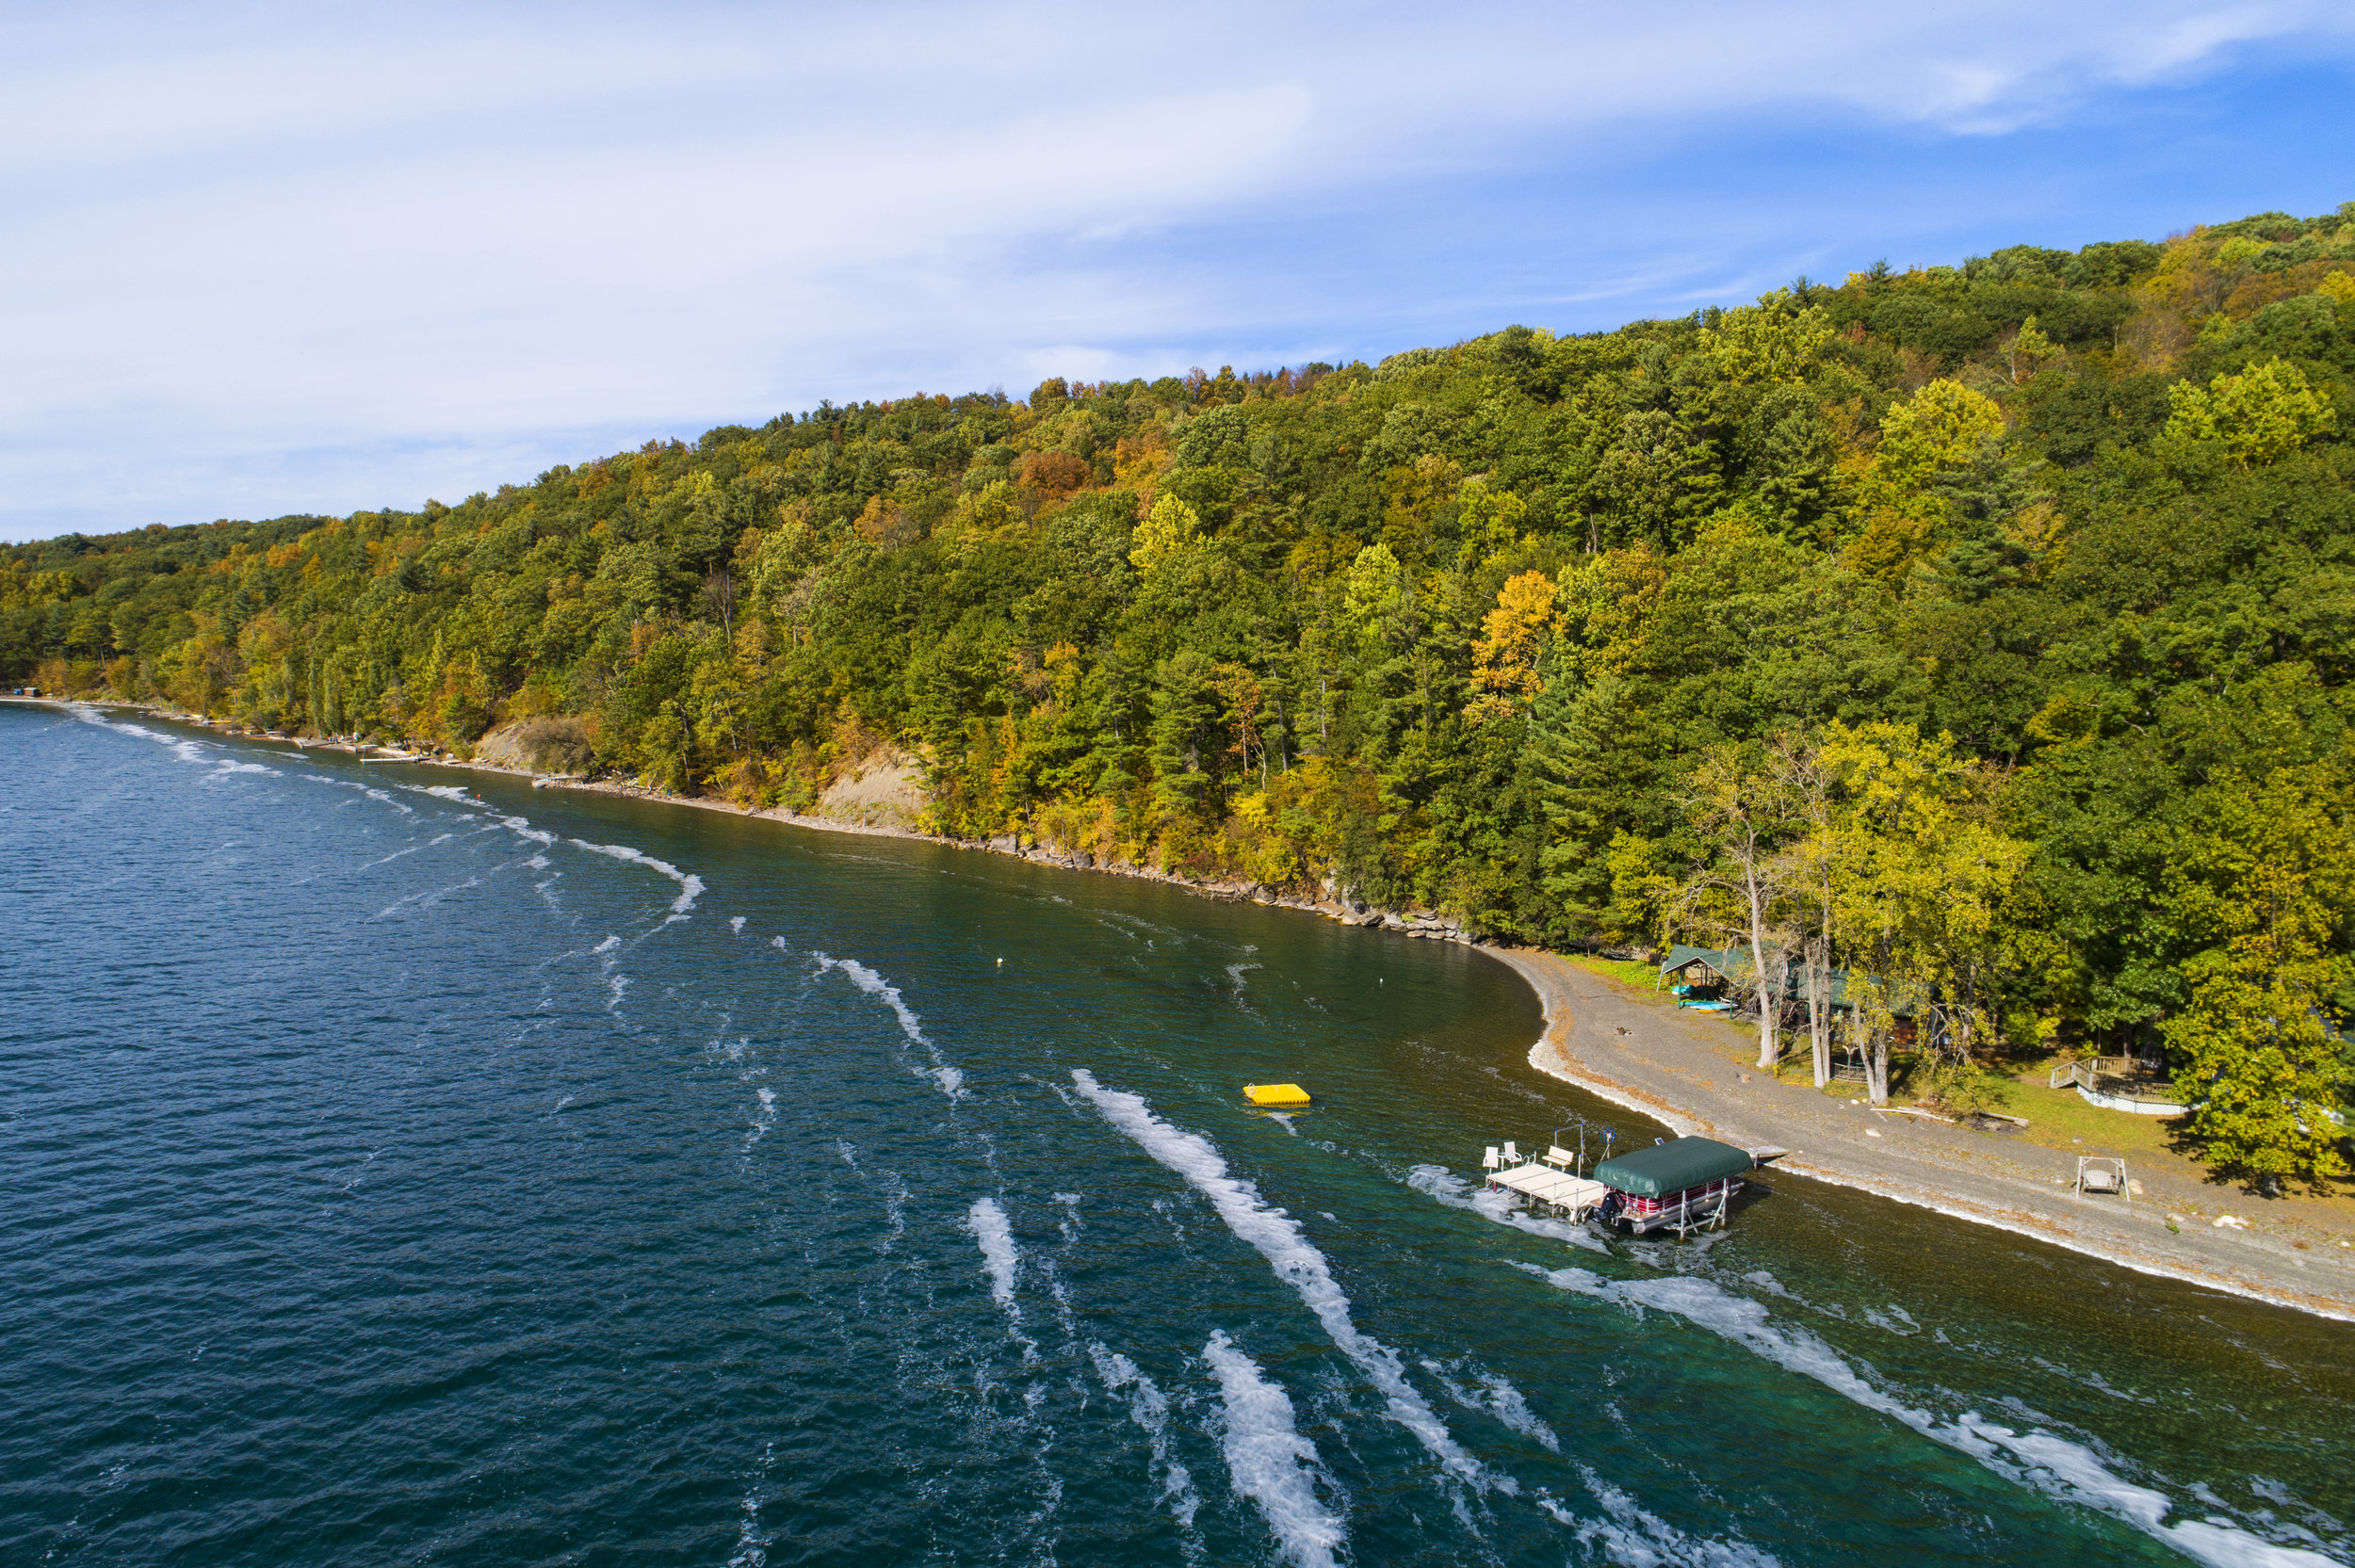 (2)   Camp Longhorn, 974 Ten Mile Point, Skaneateles, NY 13152, For Sale DJI_0299.jpg